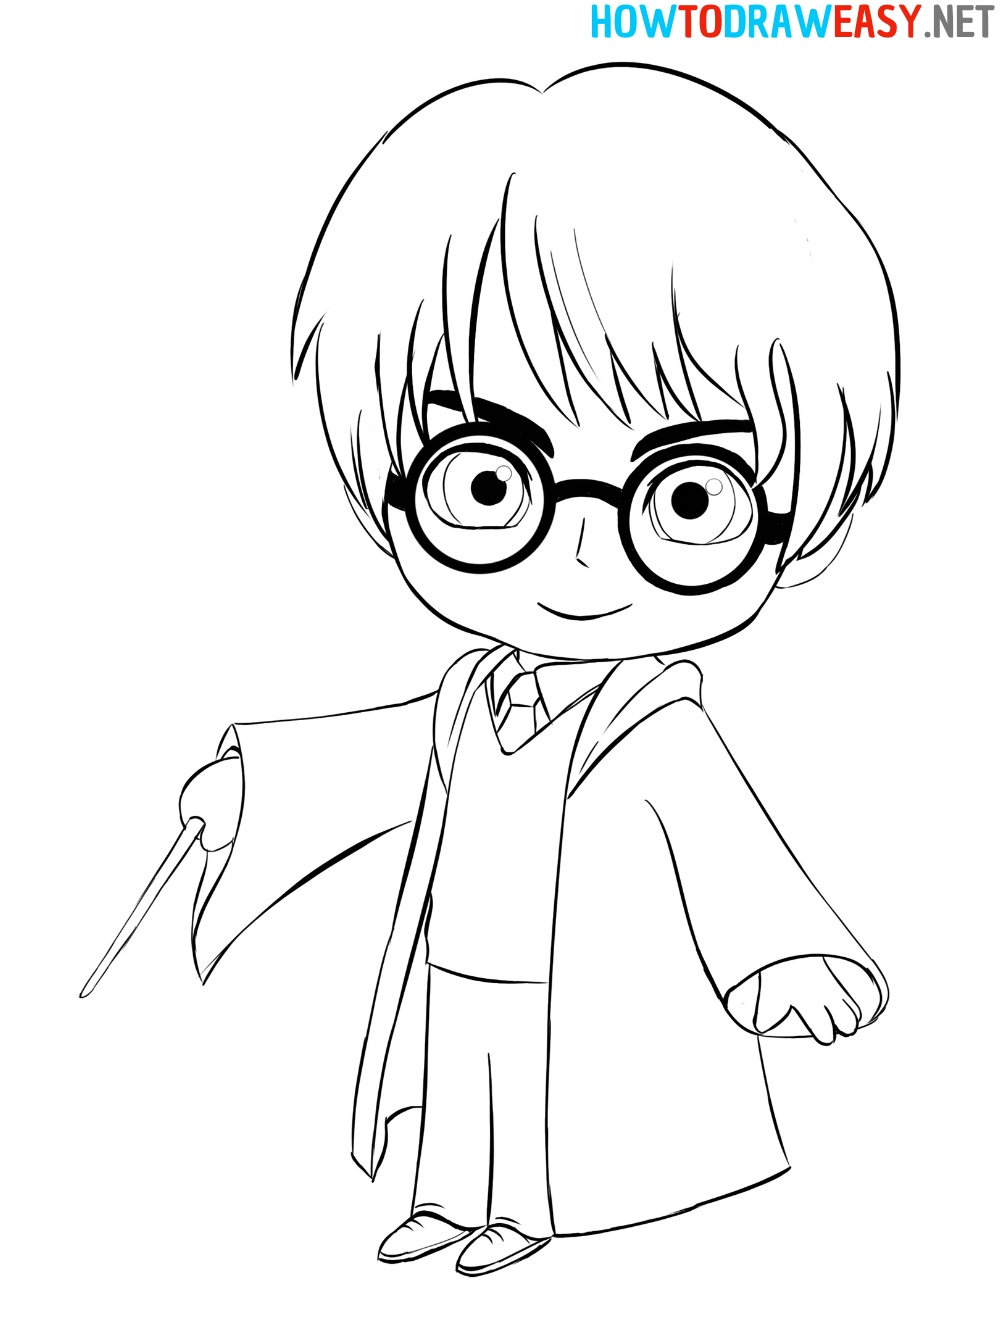 How to Draw Cute Harry Potter